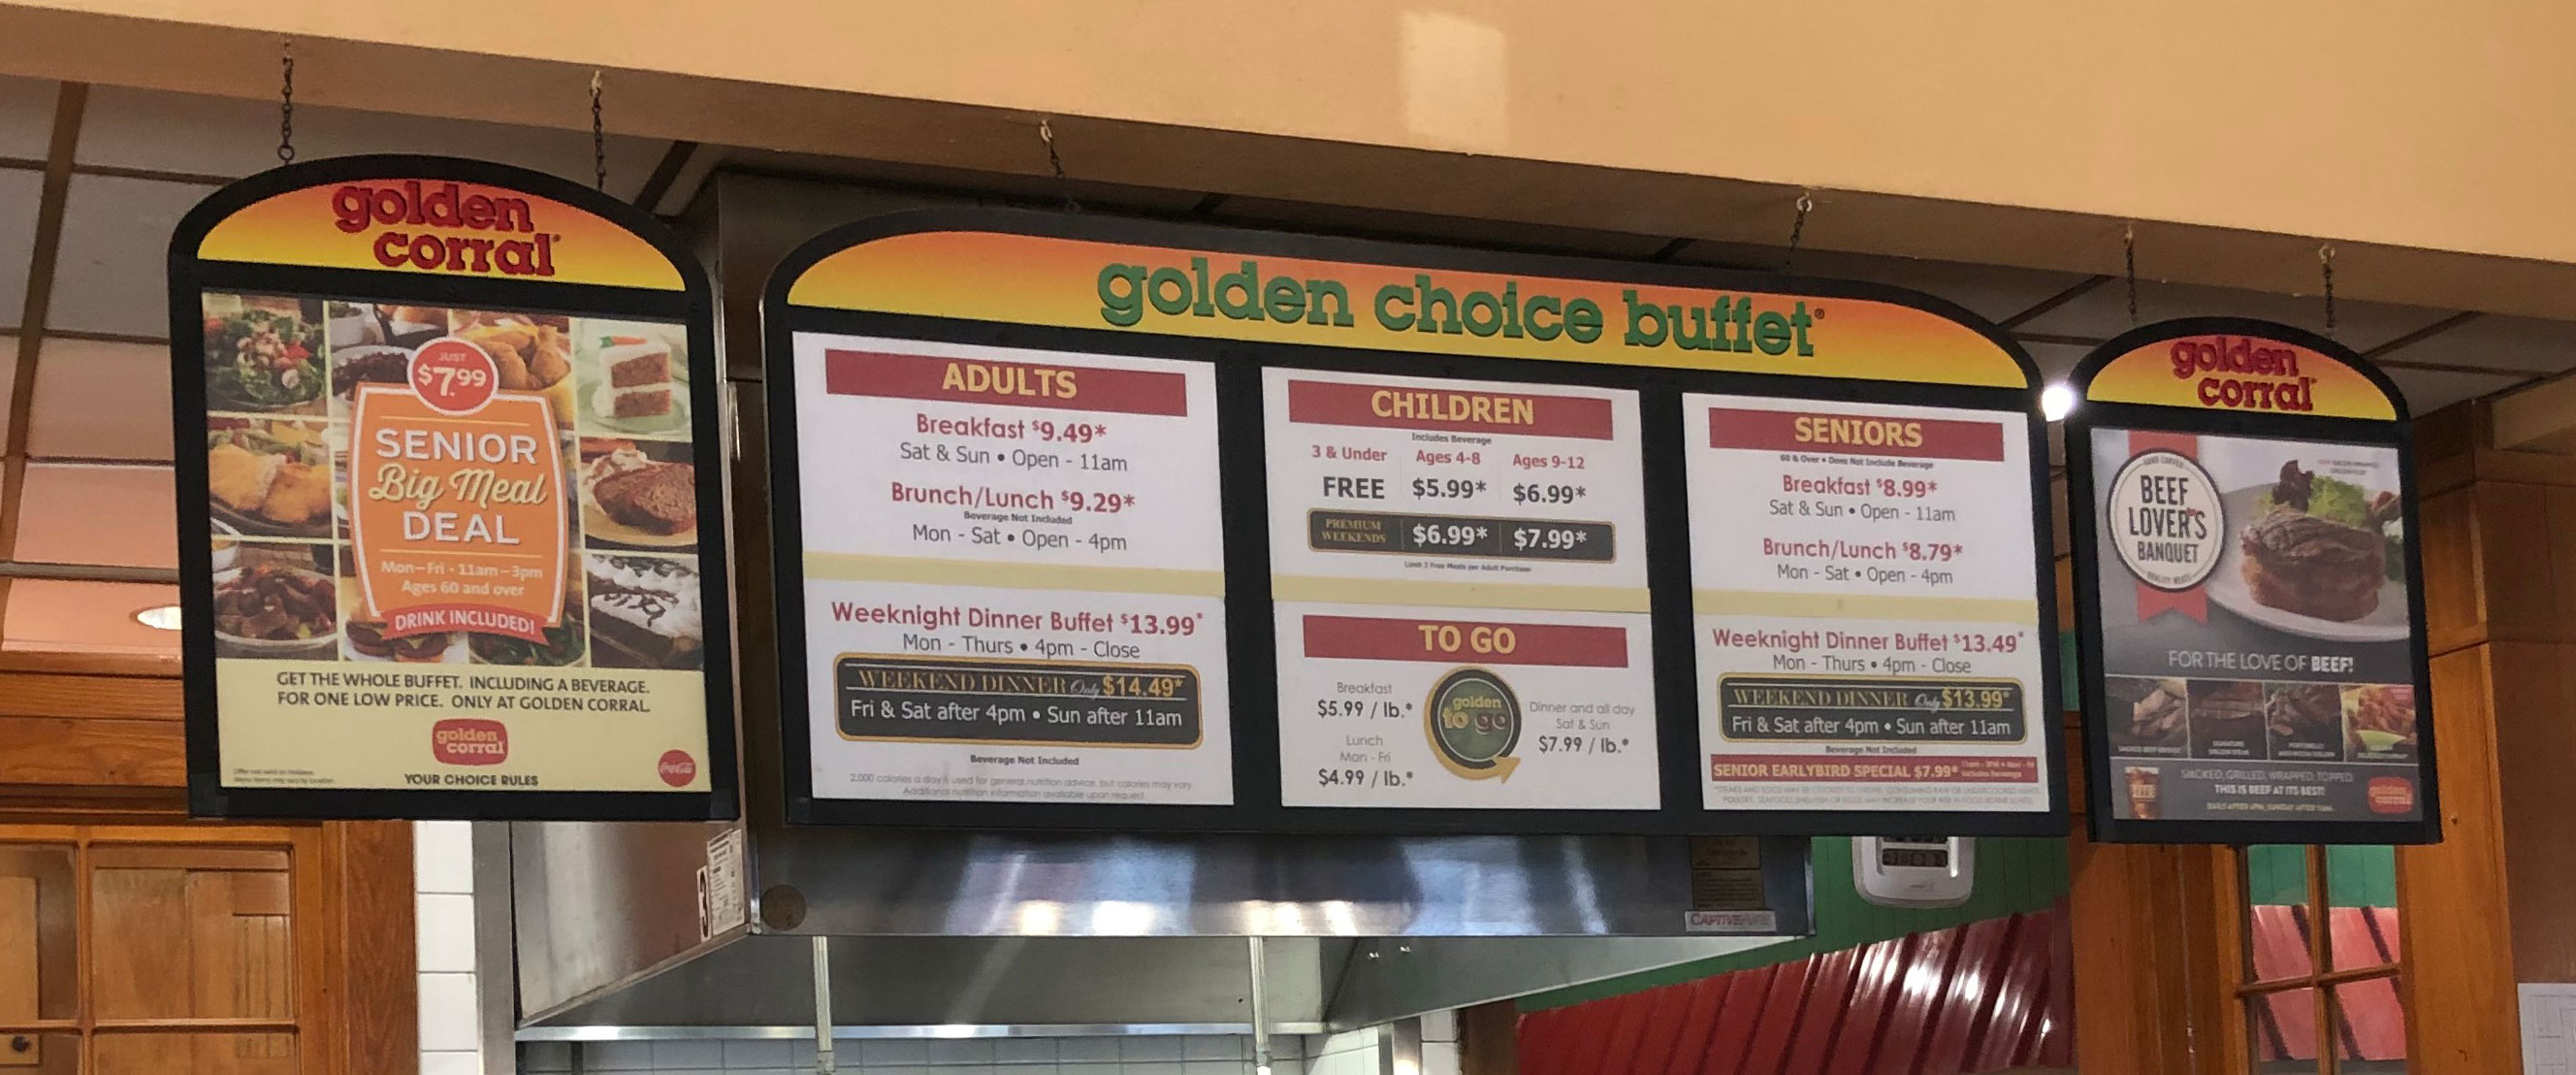 Golden Corral Prices - Best Buffet Prices